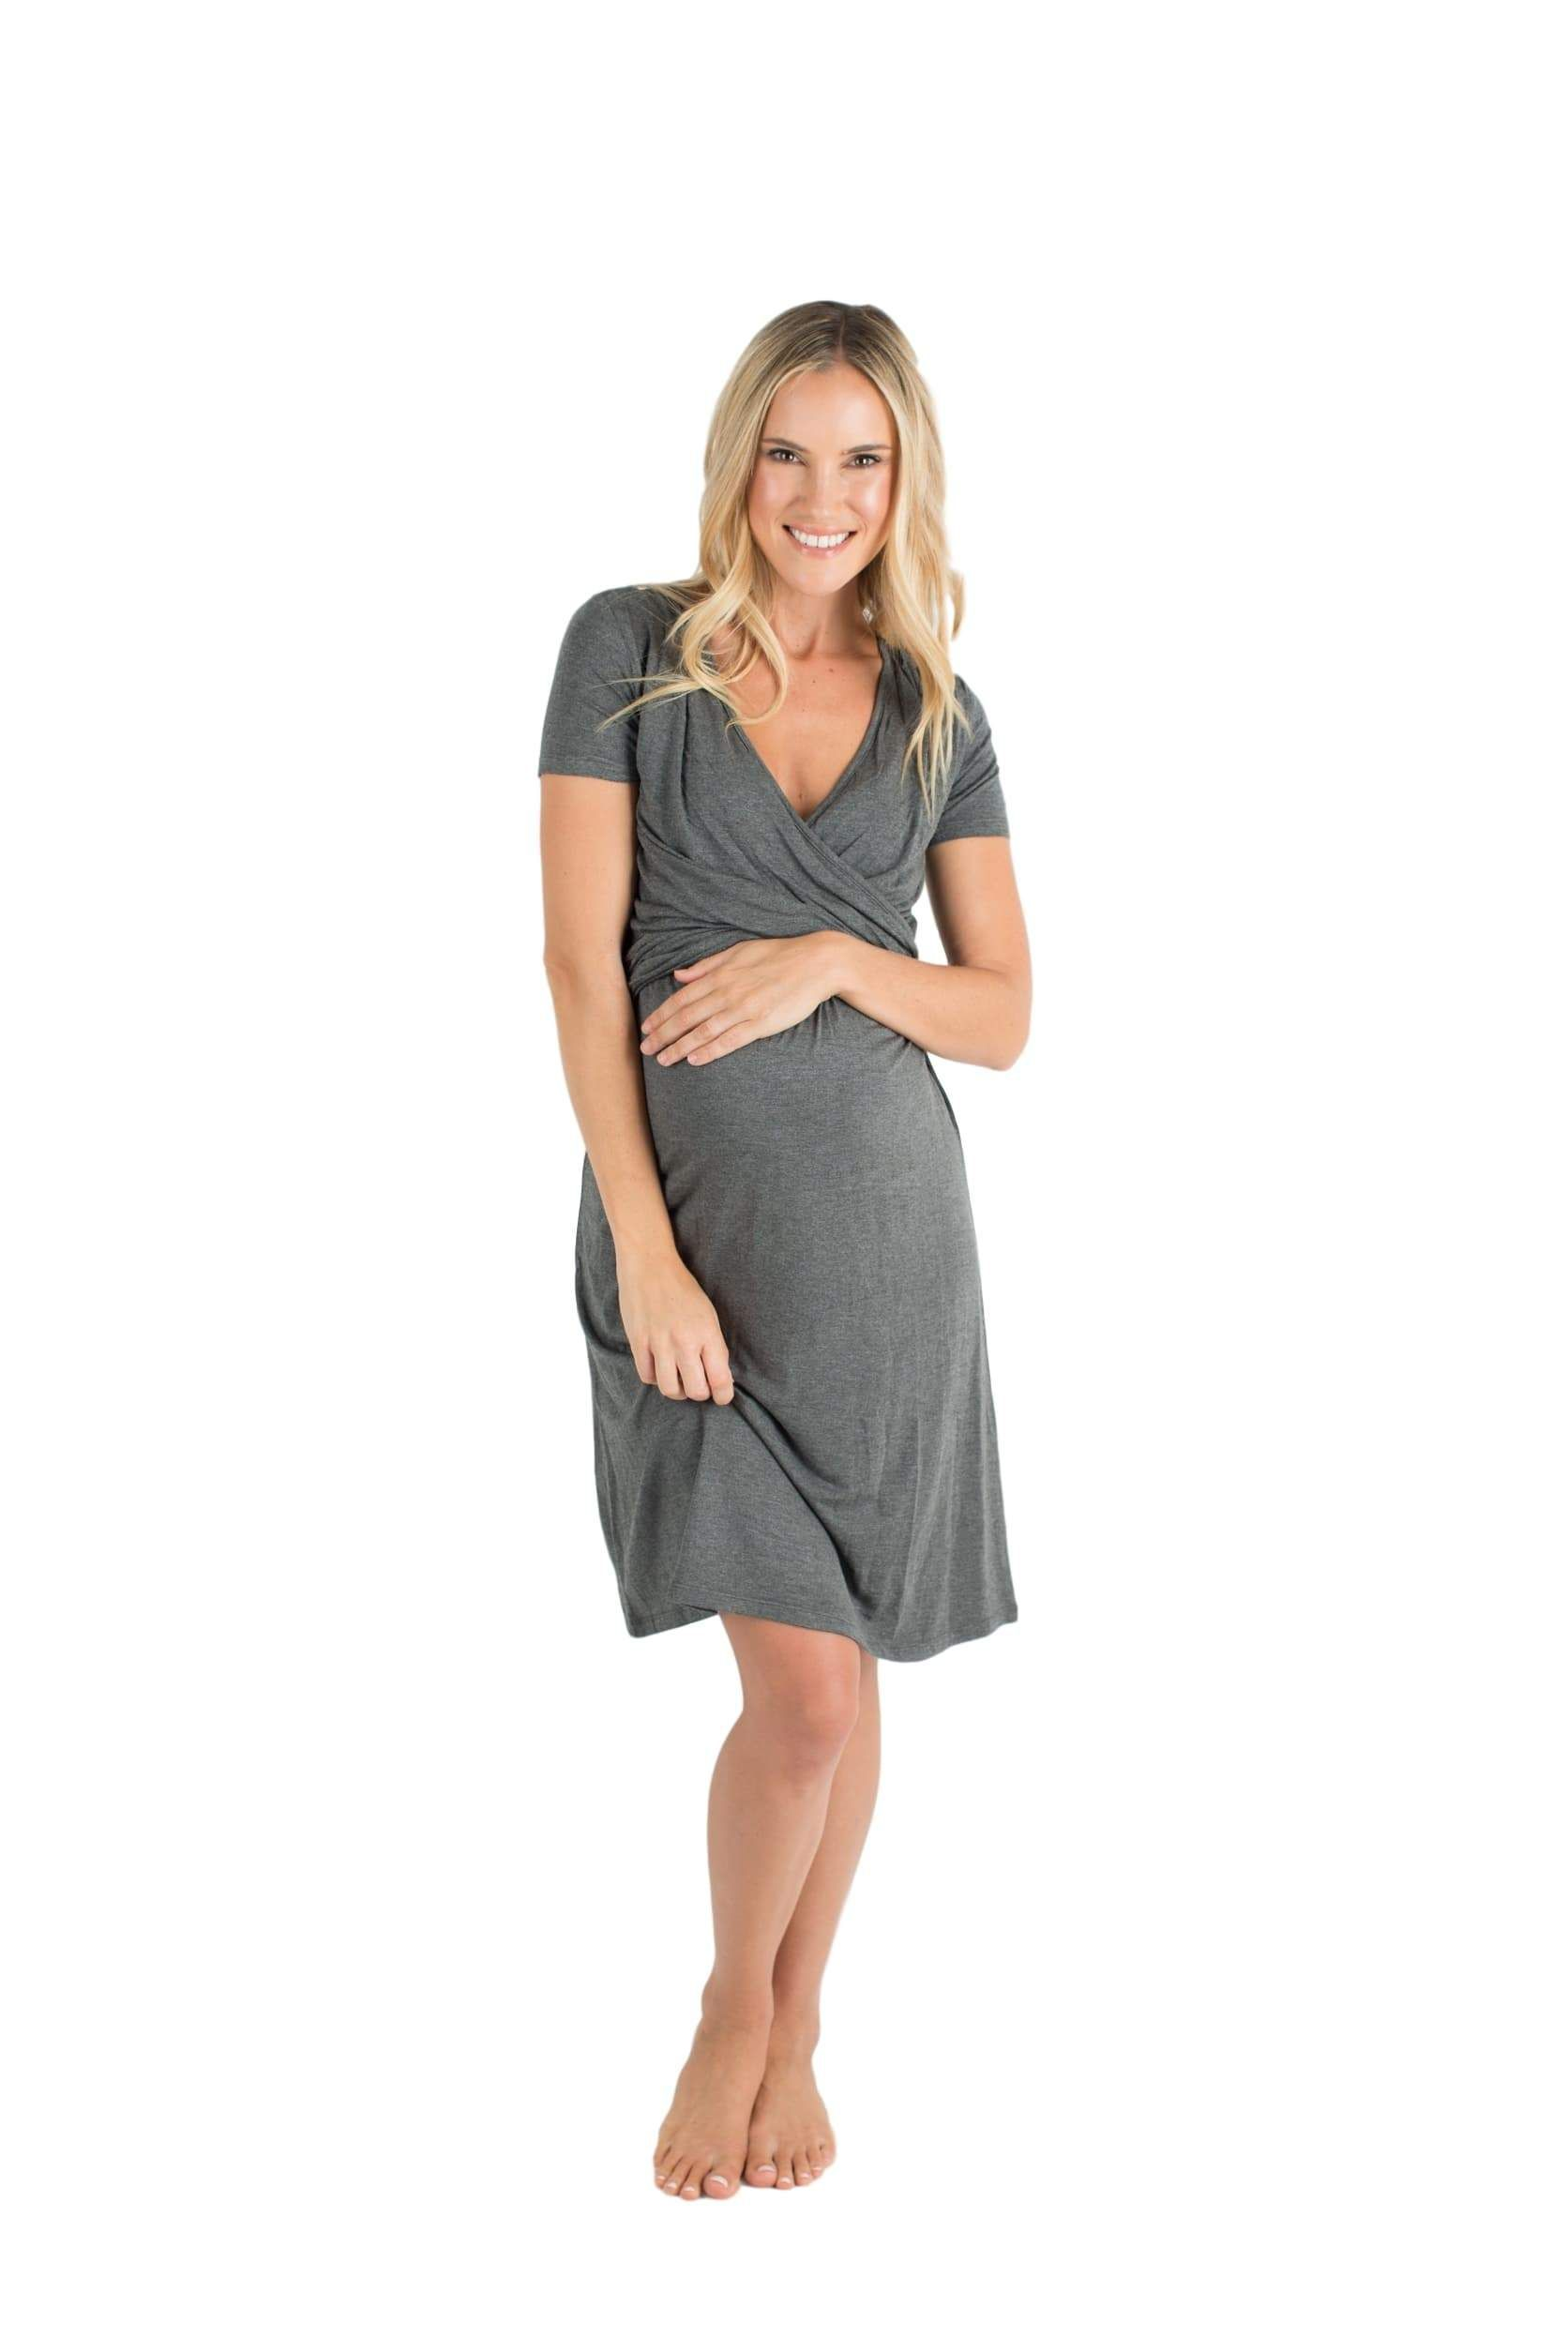 The alyssa ultra soft maternity u nursing nightgown dress dark grey